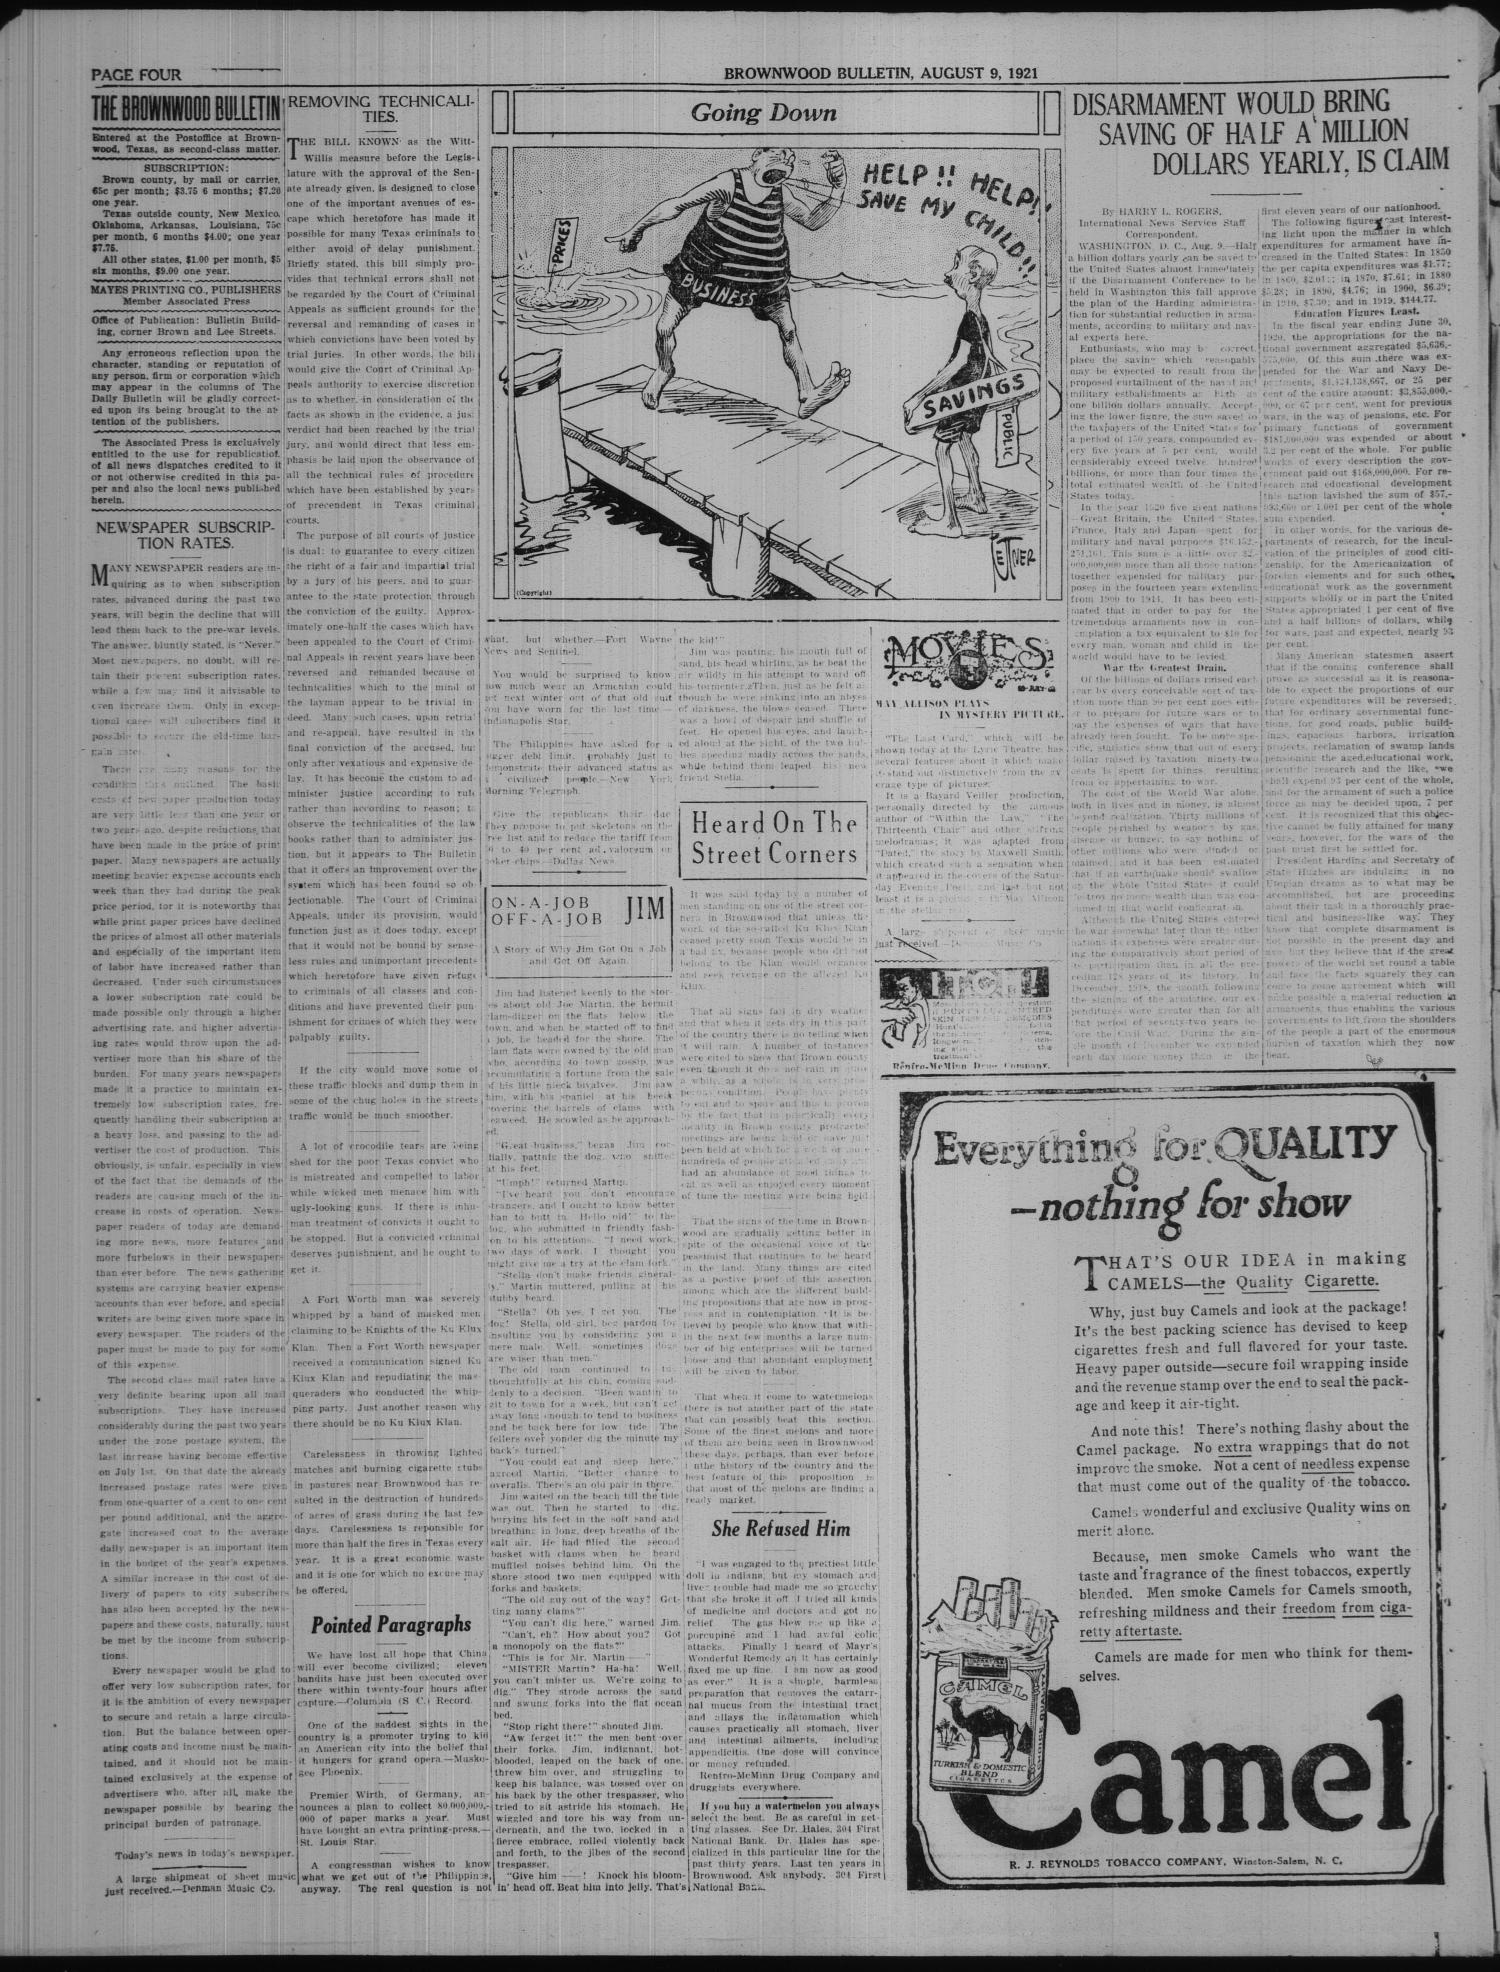 Brownwood Bulletin (Brownwood, Tex.), Vol. 21, No. 251, Ed. 1 Tuesday, August 9, 1921                                                                                                      [Sequence #]: 4 of 6